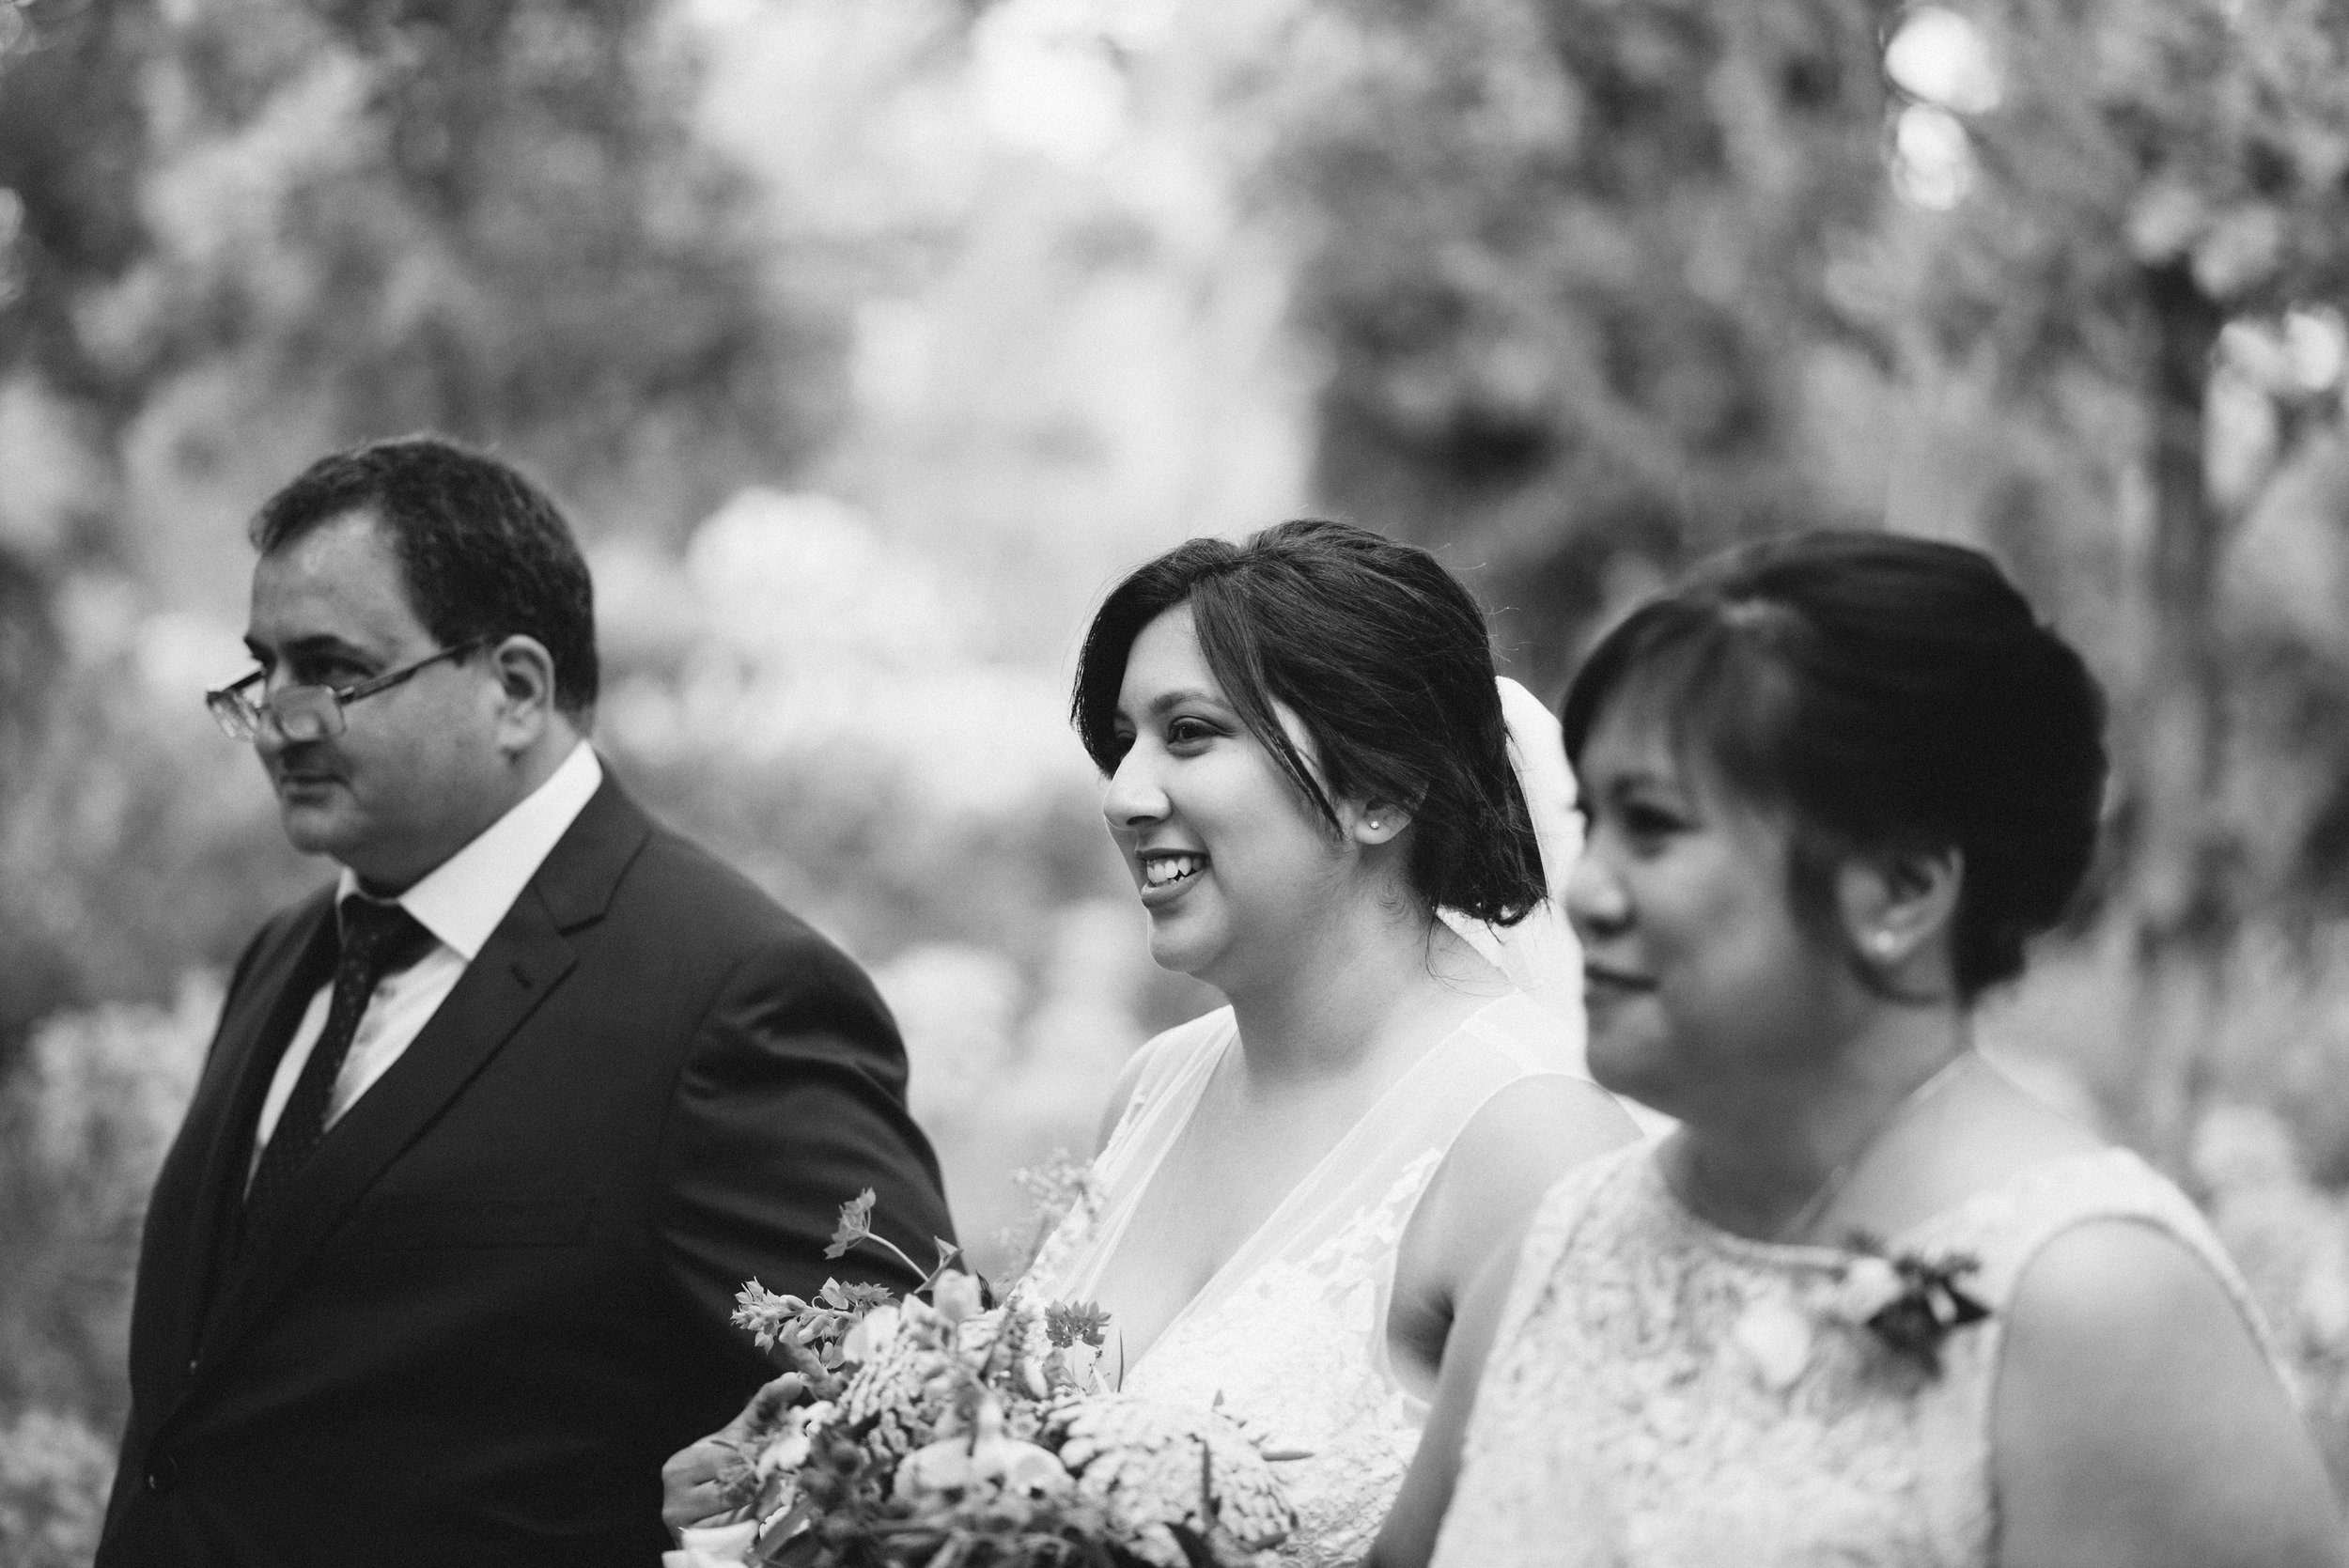 Campovida-wedding-24.jpg